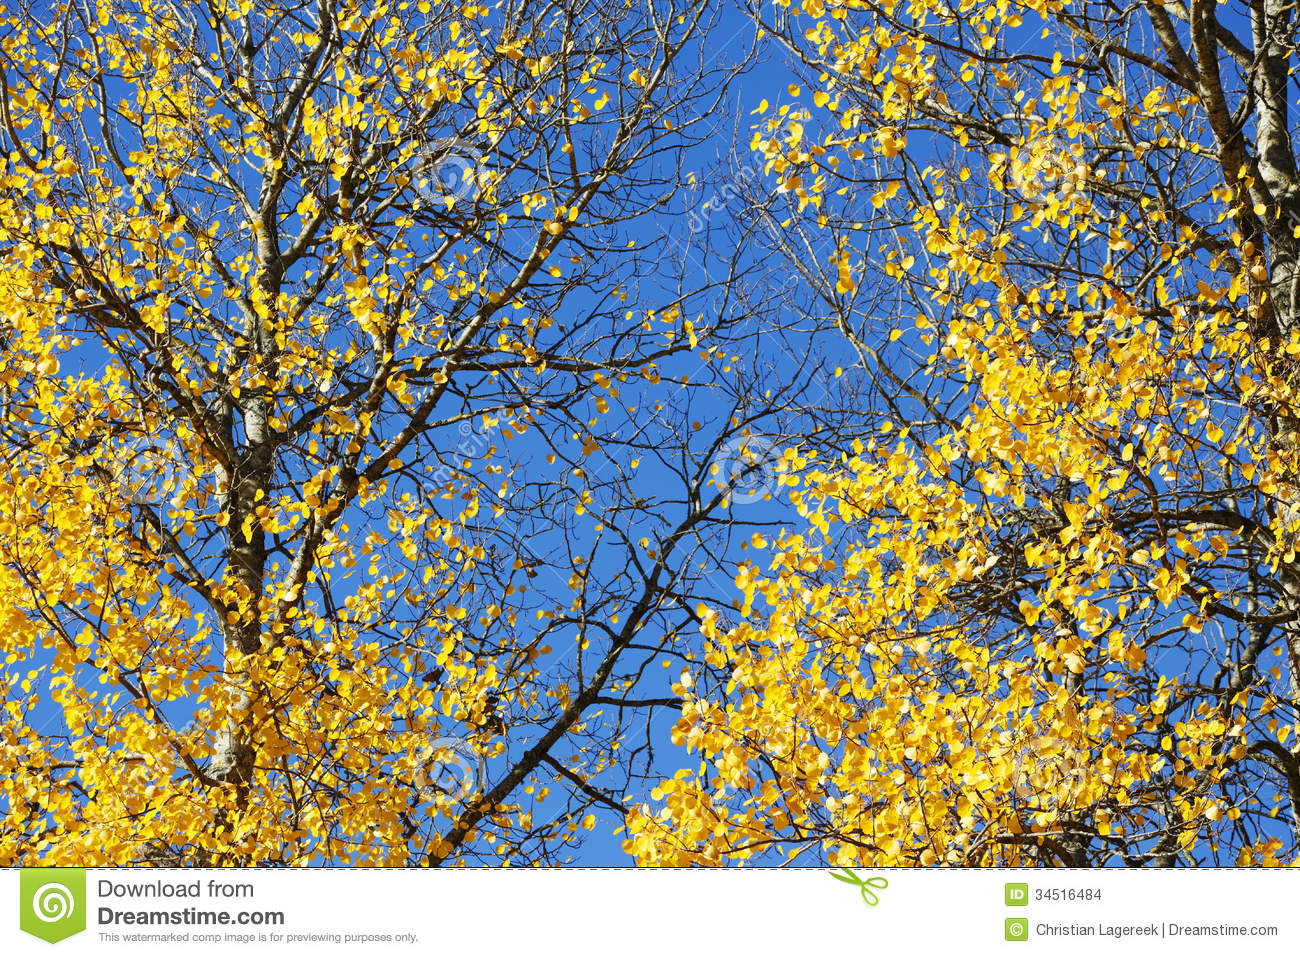 Autumn leaves and trees